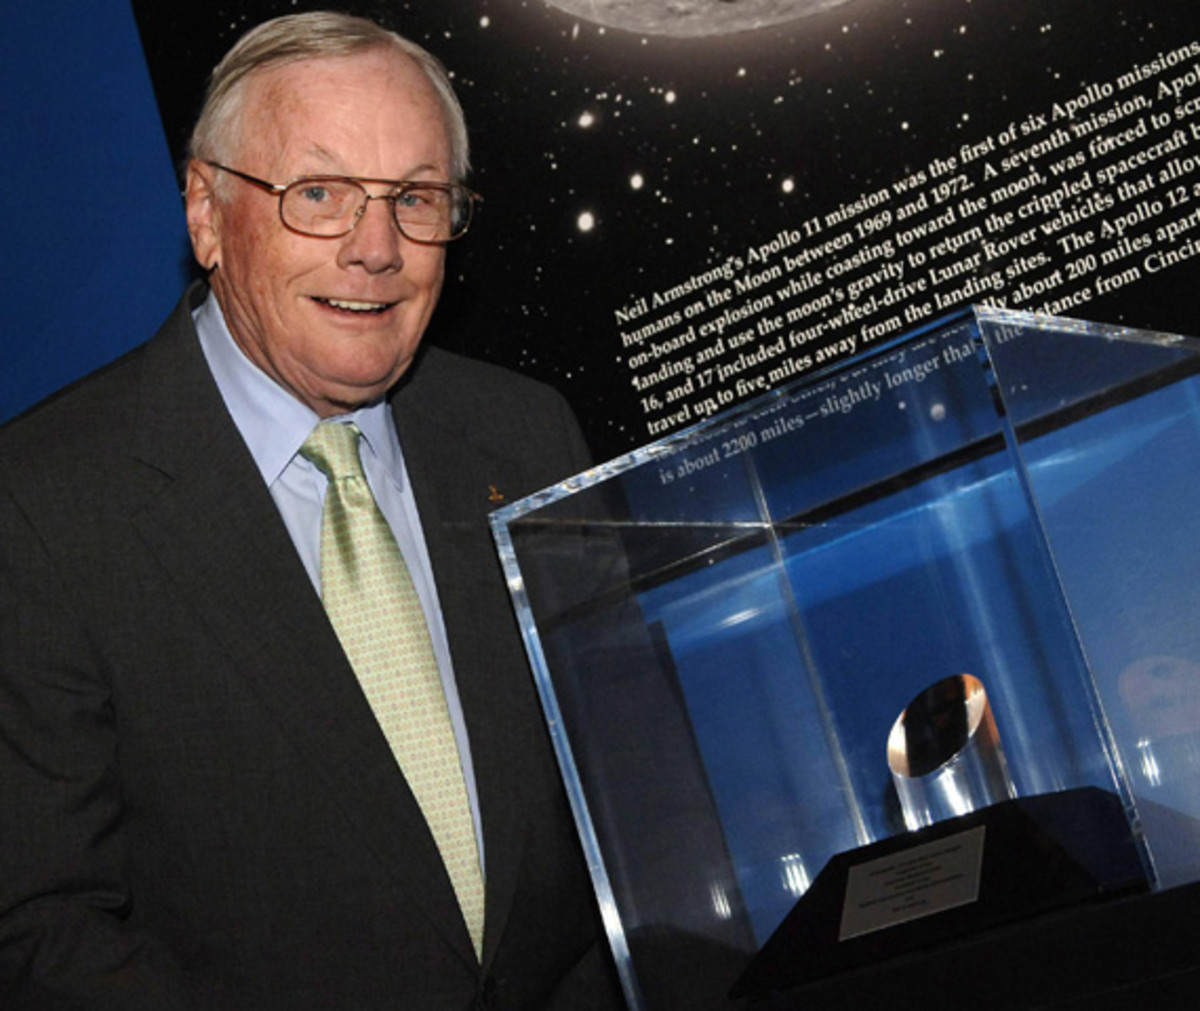 neil-armstrong-first-man-on-the-moon-apollo-11-10